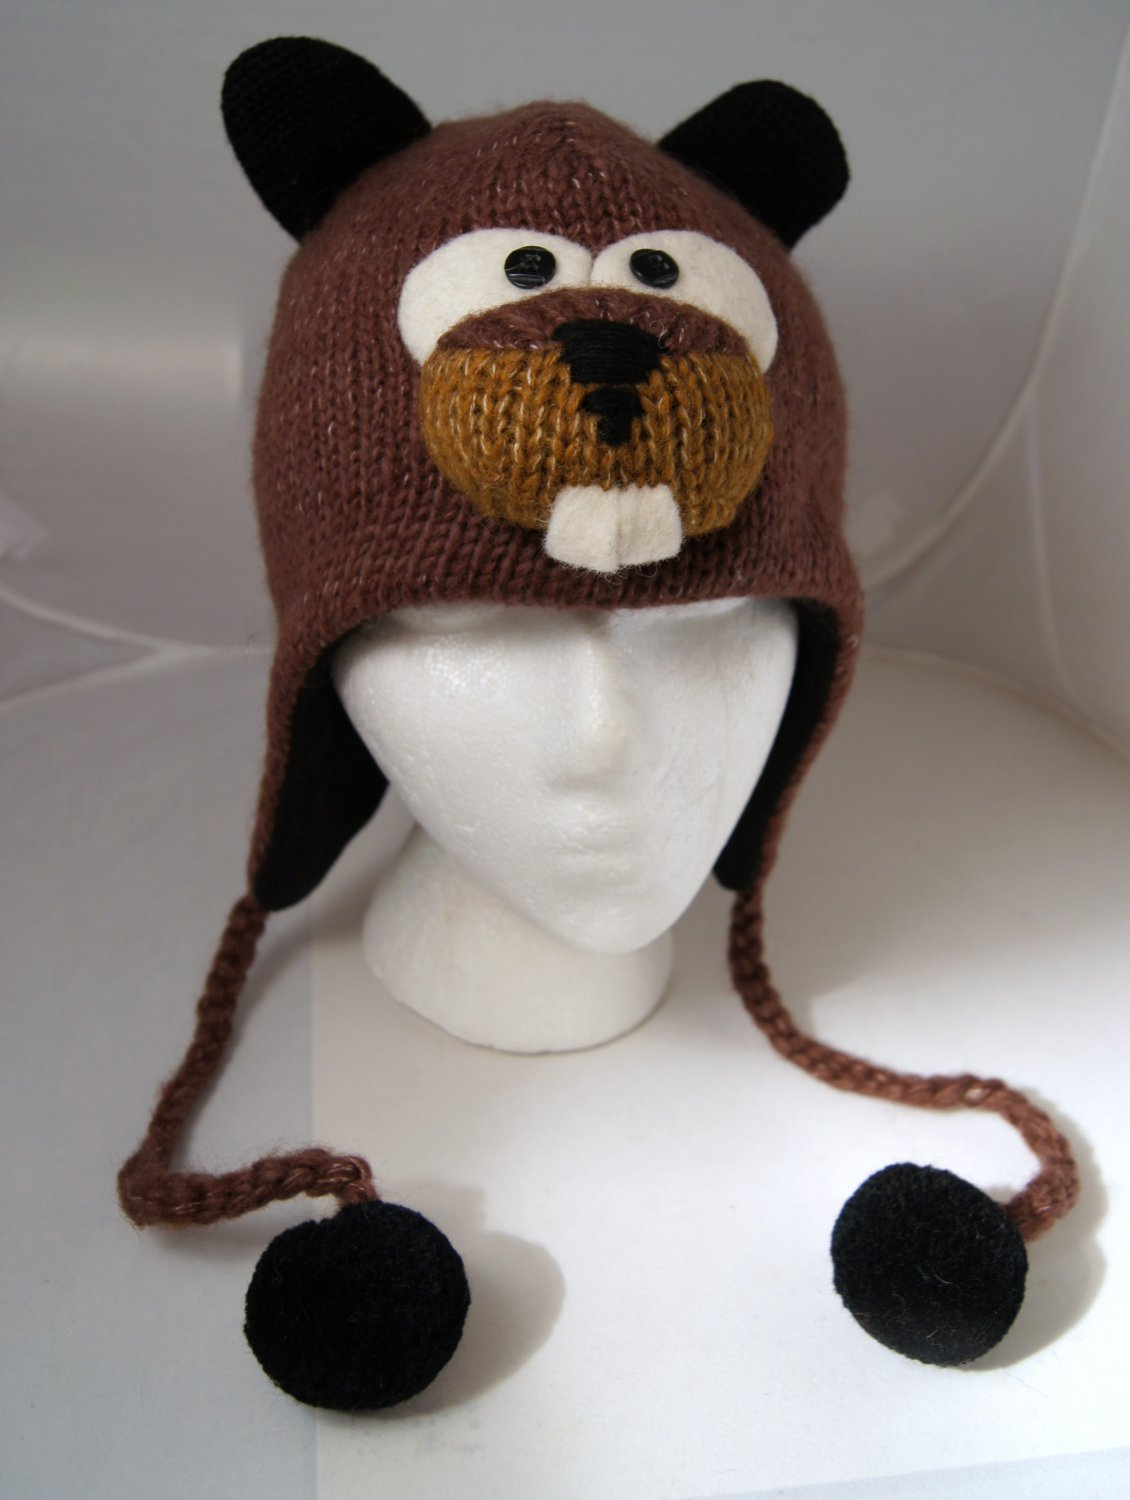 deLux  Tag BEAVER HAT ski cap ADULT SIZE Cable Knit with face mask teeth black ball COSTUME